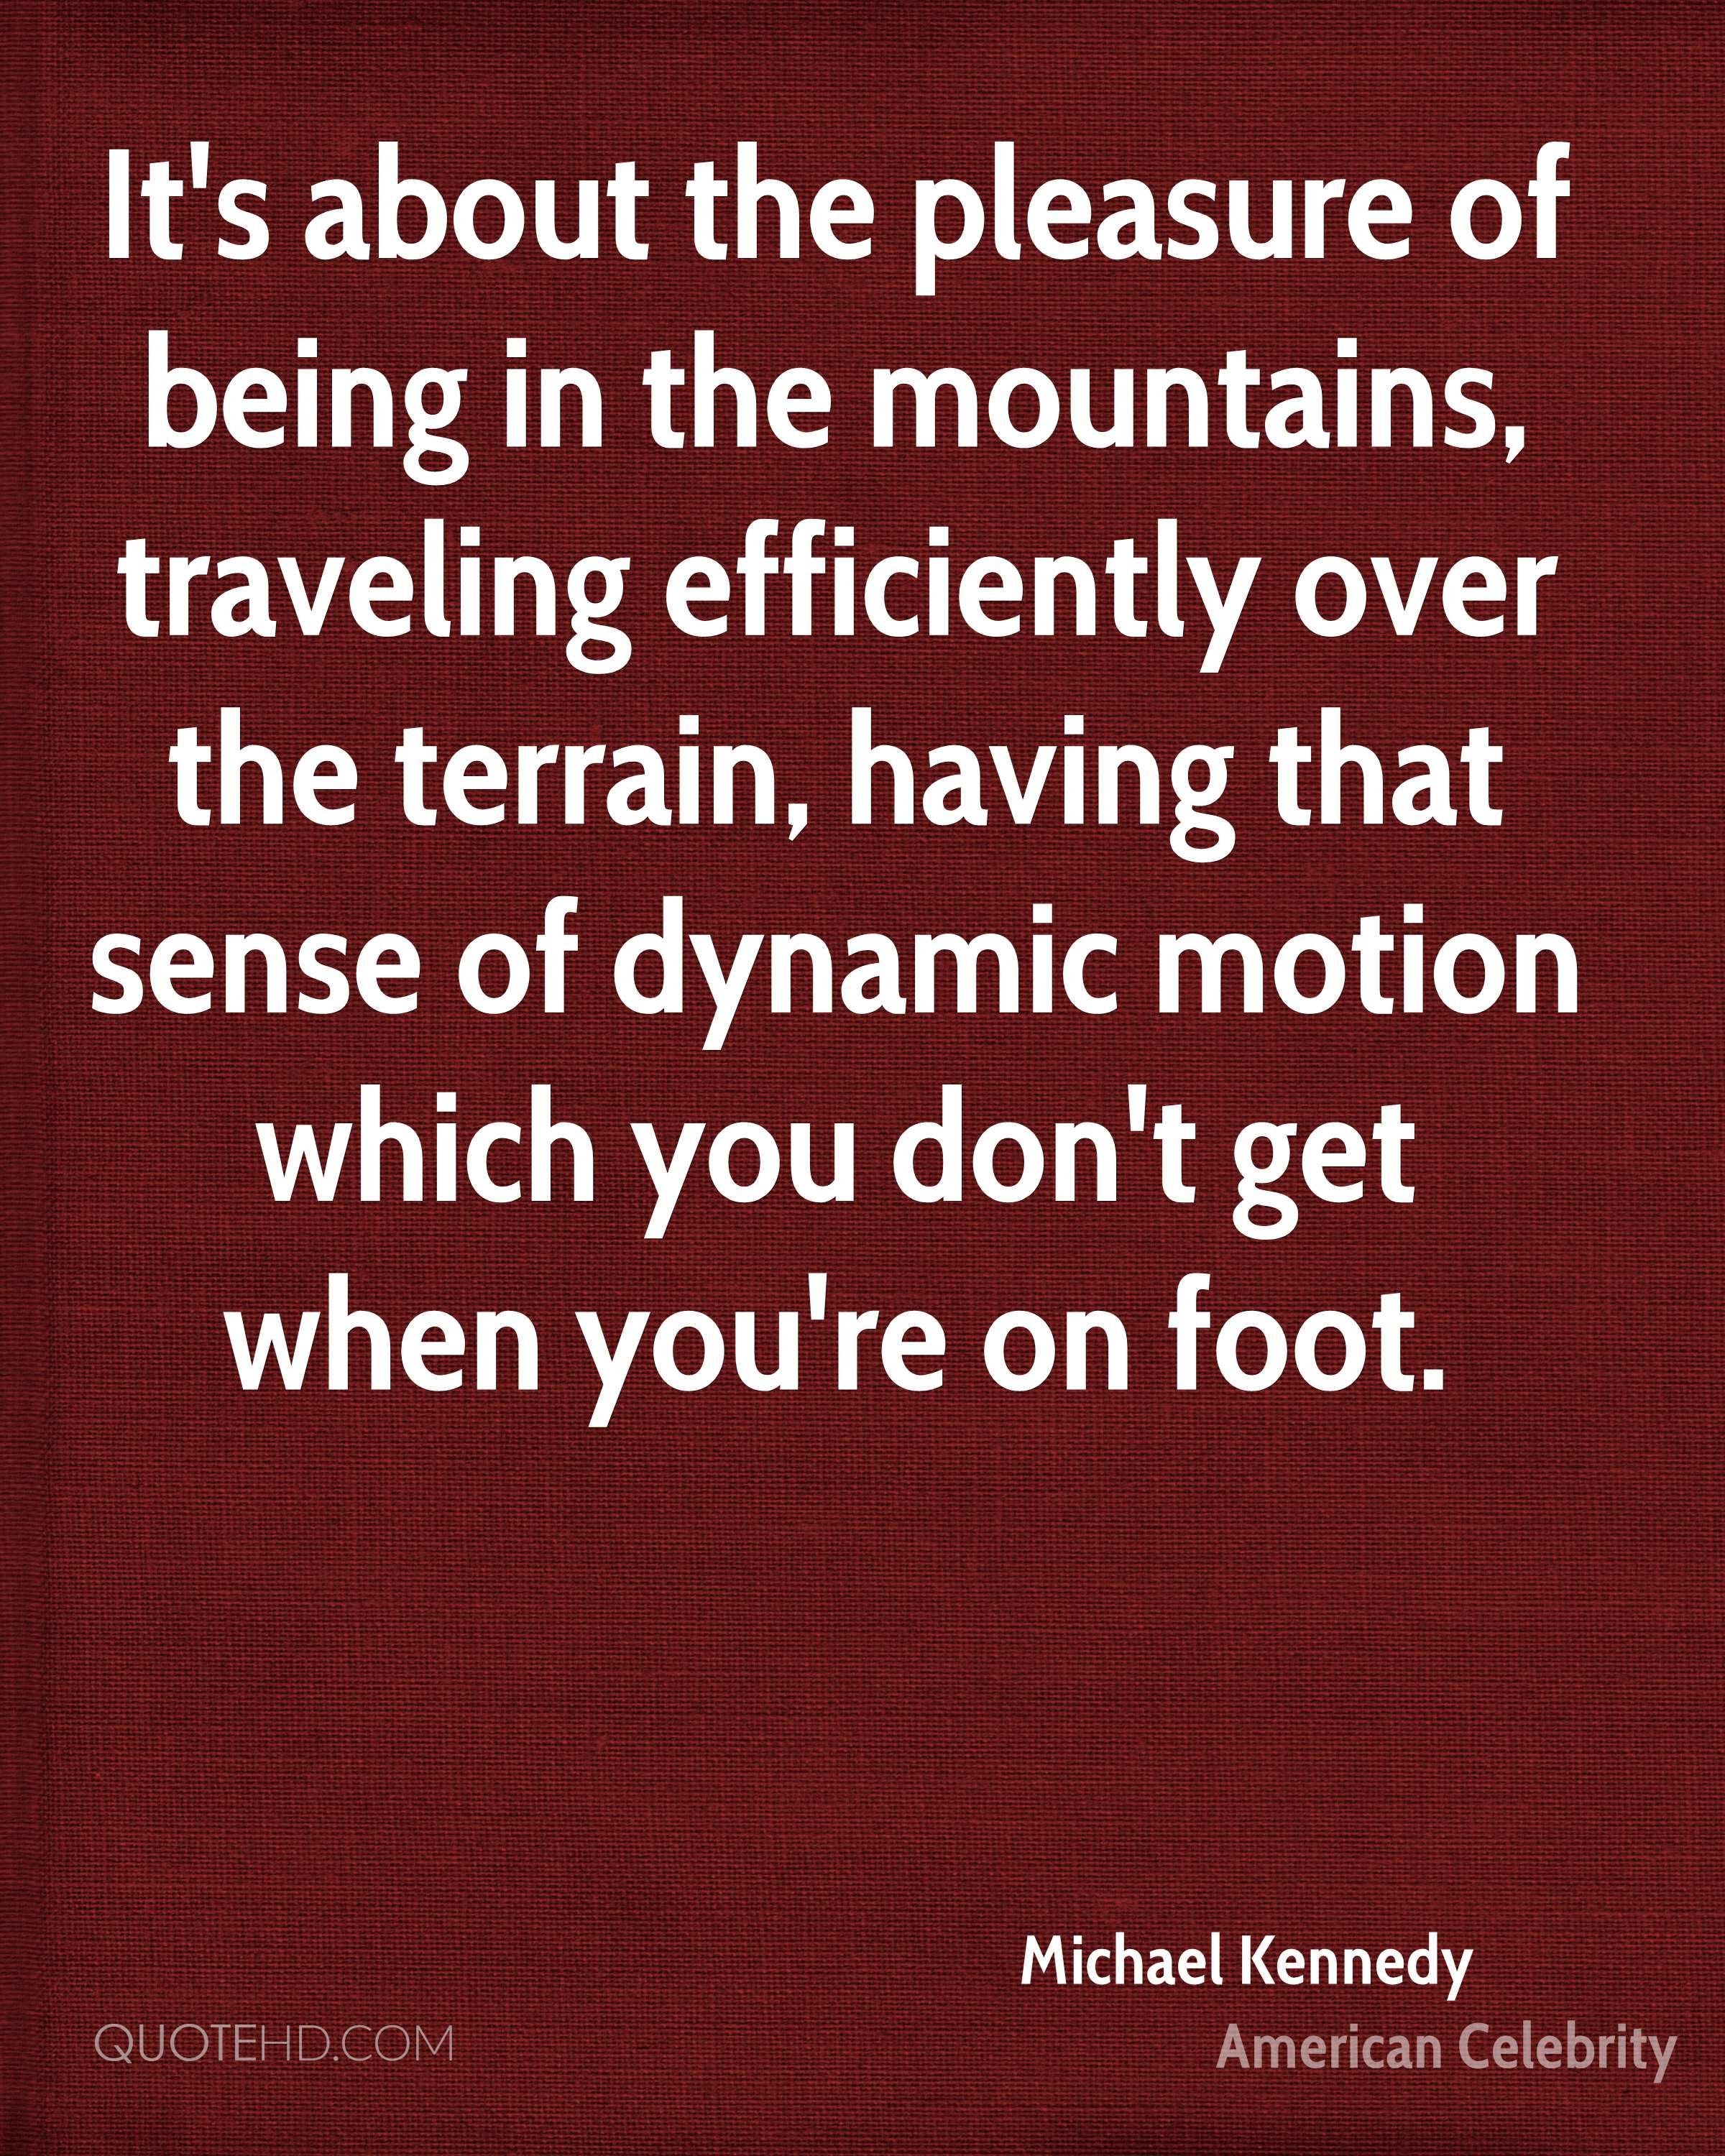 It's about the pleasure of being in the mountains, traveling efficiently over the terrain, having that sense of dynamic motion which you don't get when you're on foot.